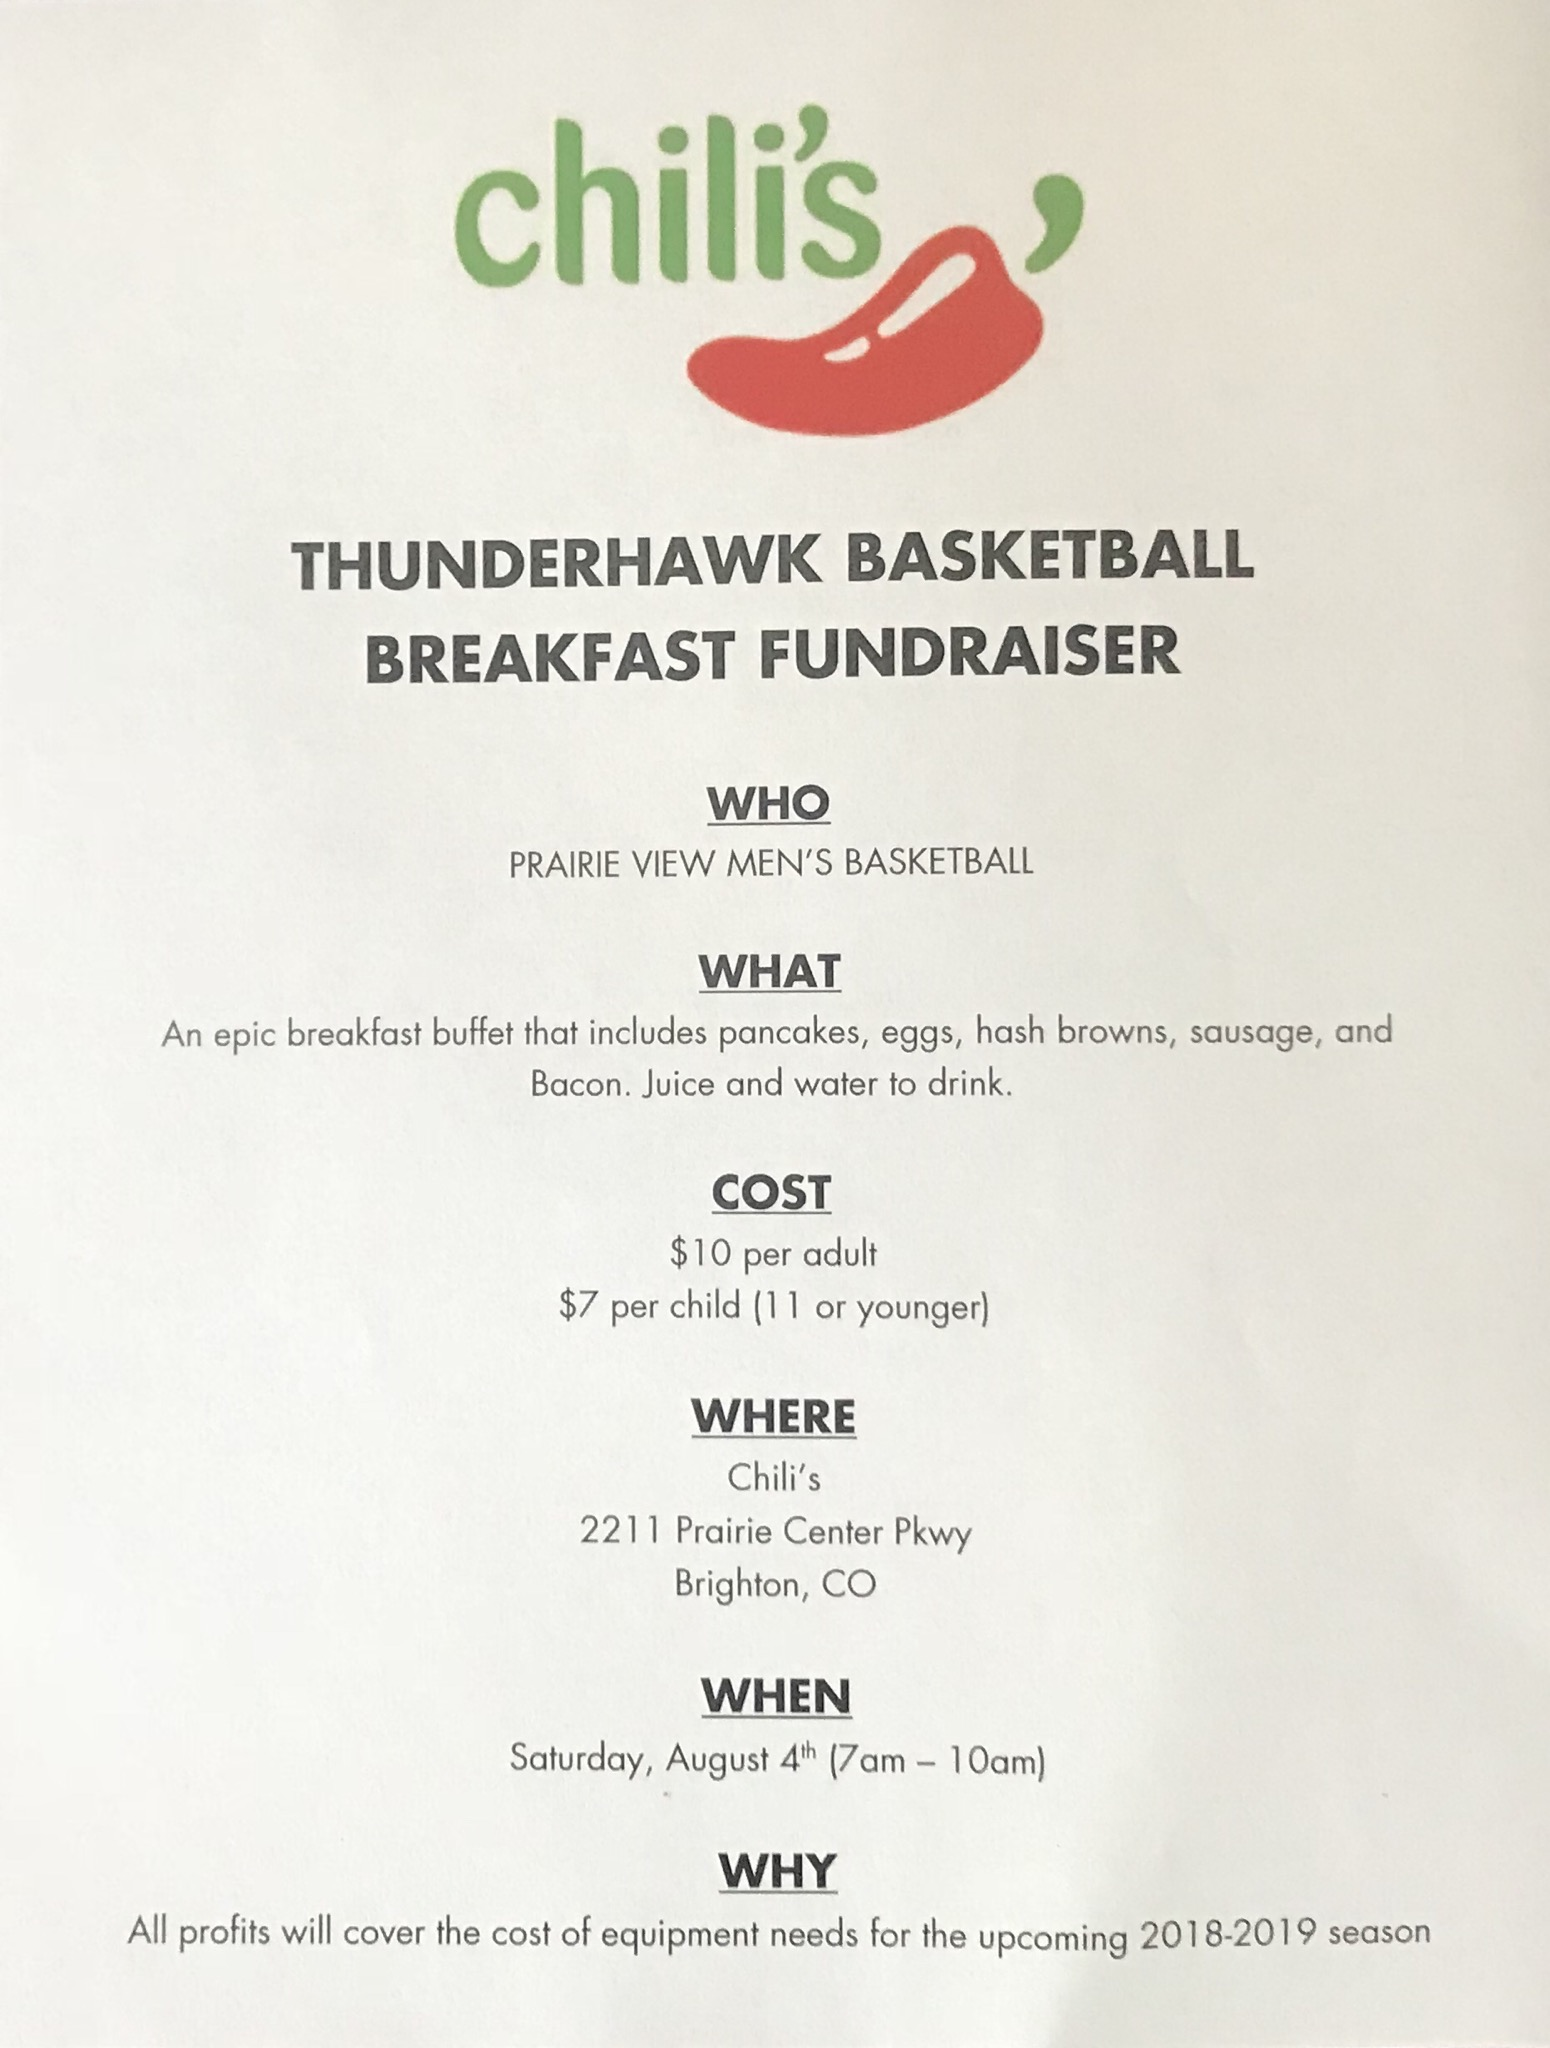 Chili's Breakfast Fundraiser – Saturday, August 4th